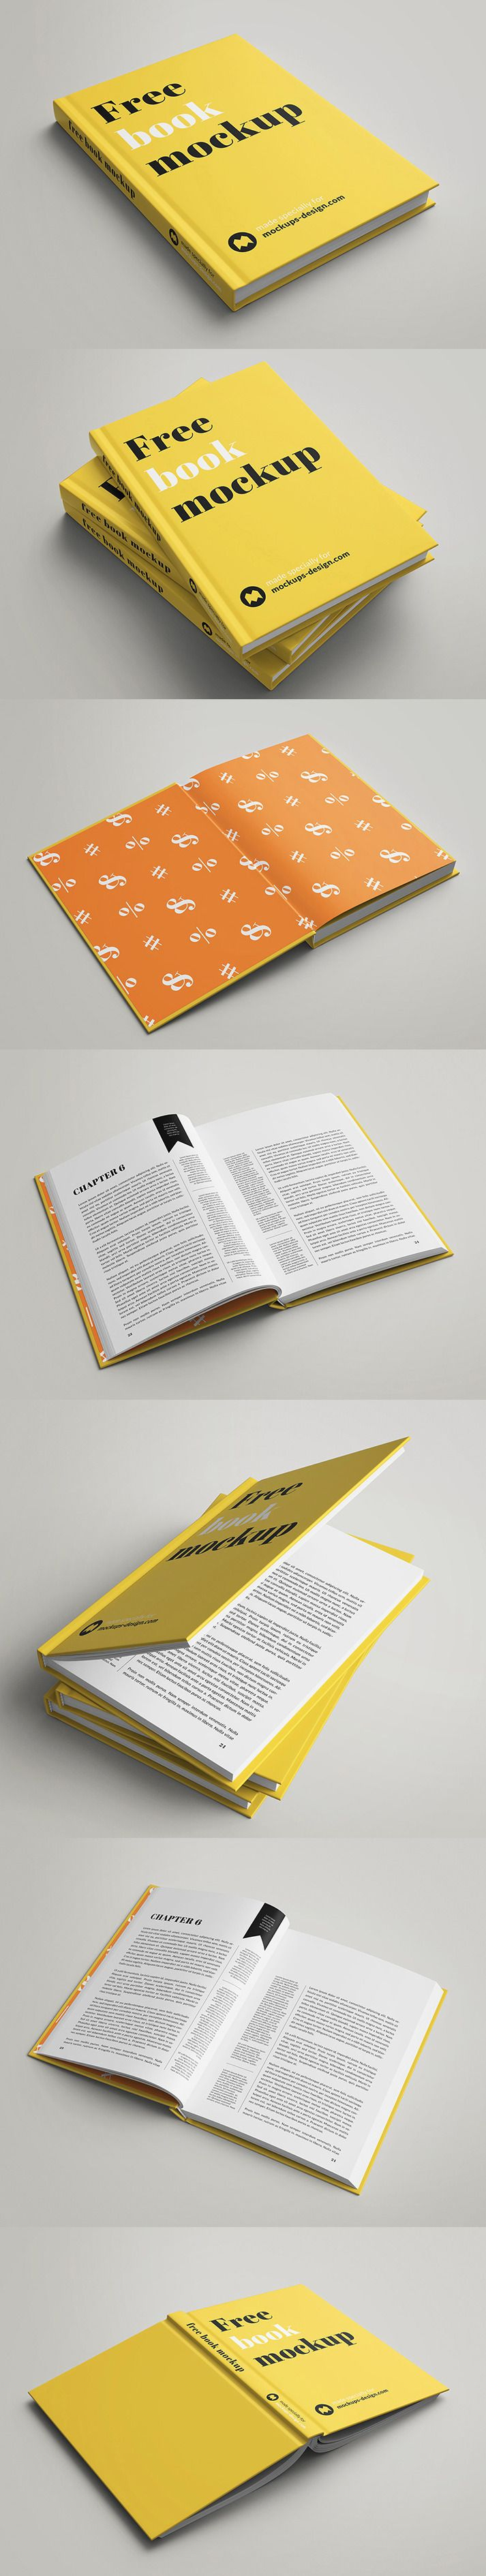 Free Book Mockup PSD Yes! Another free book mockup – we know how much our users like them. Seven different shots, with different angles with cust...